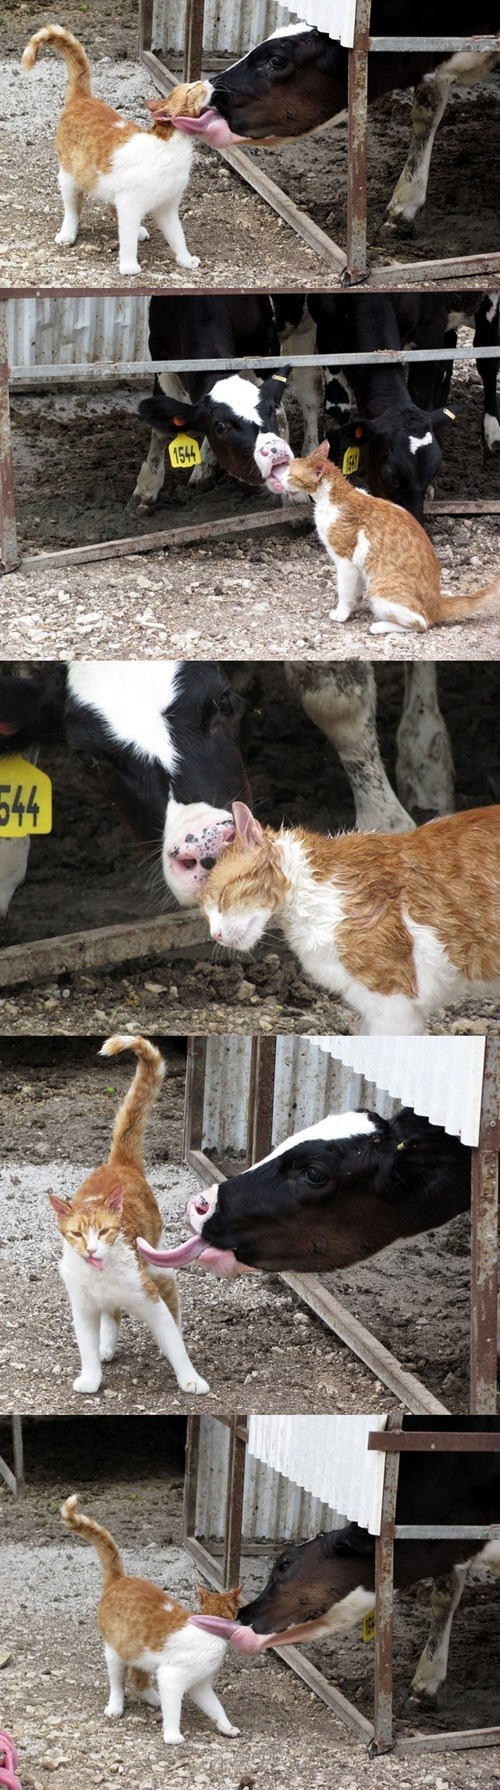 Cats,cute,cows,kisses,friendship